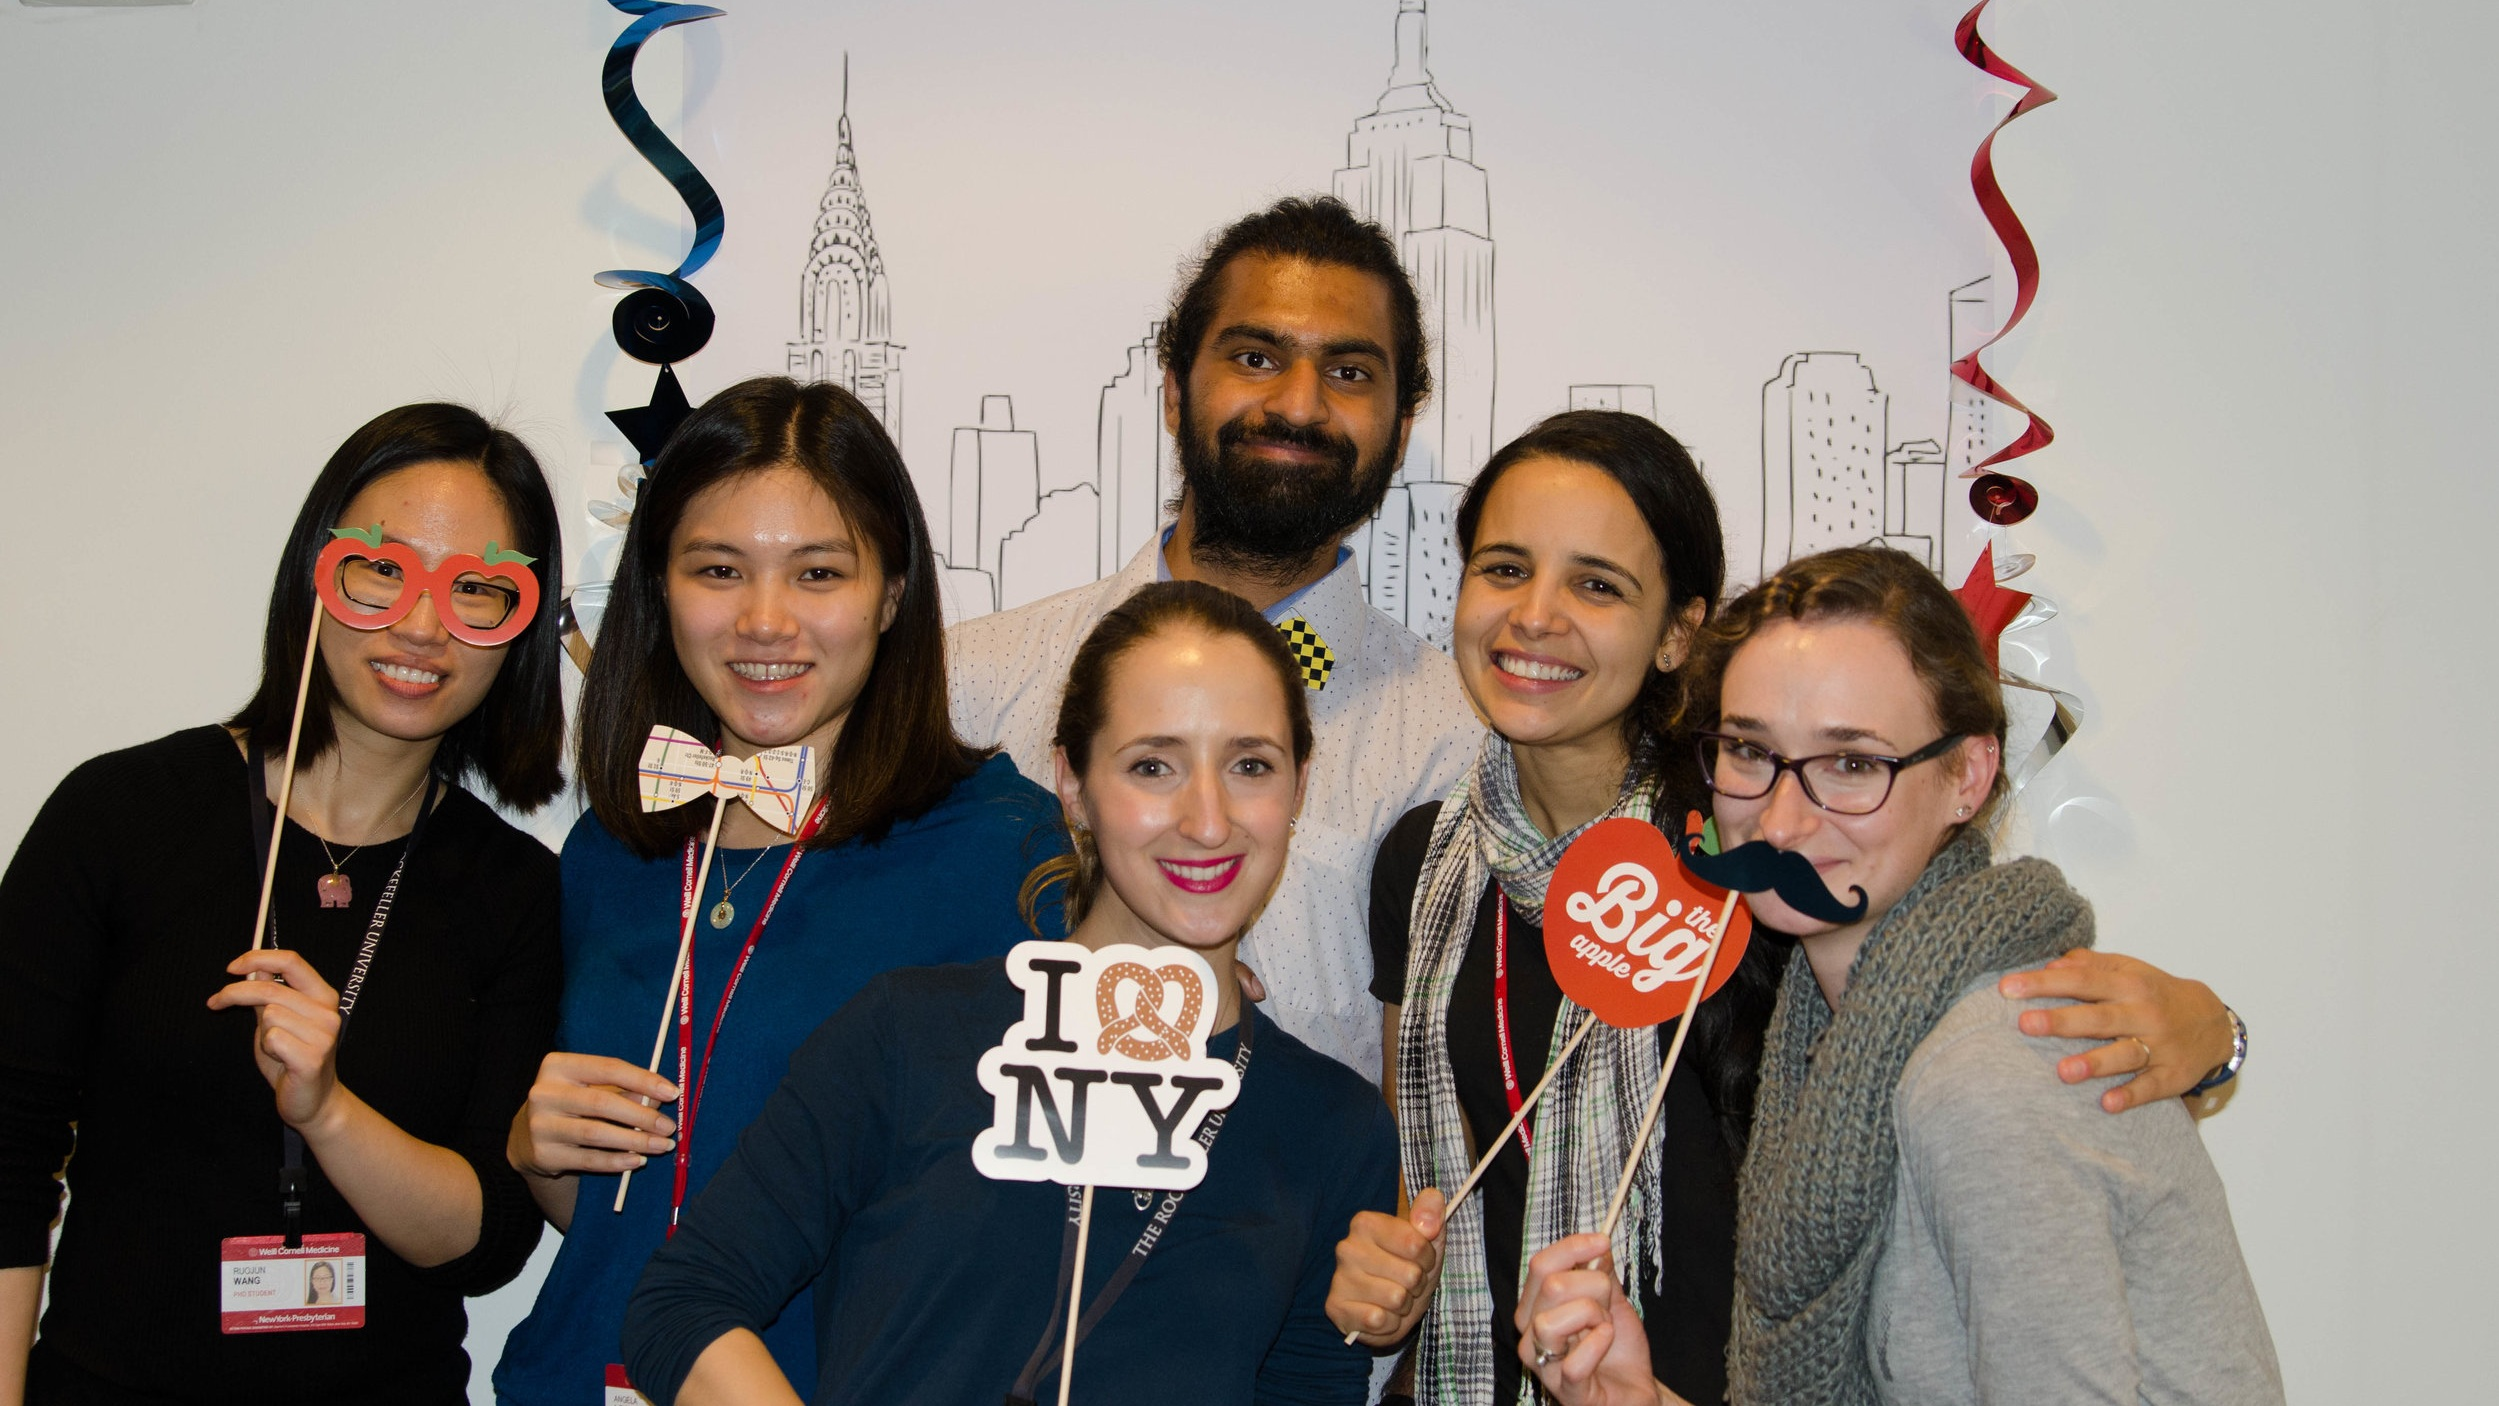 Students at farewell party, Nov. 2018   In November 2018, we bid farewell to some fabulous coworkers who were all moving to new cities. We celebrated our time with them with a NYC-themed photobooth. Wishing them all well in their labs!